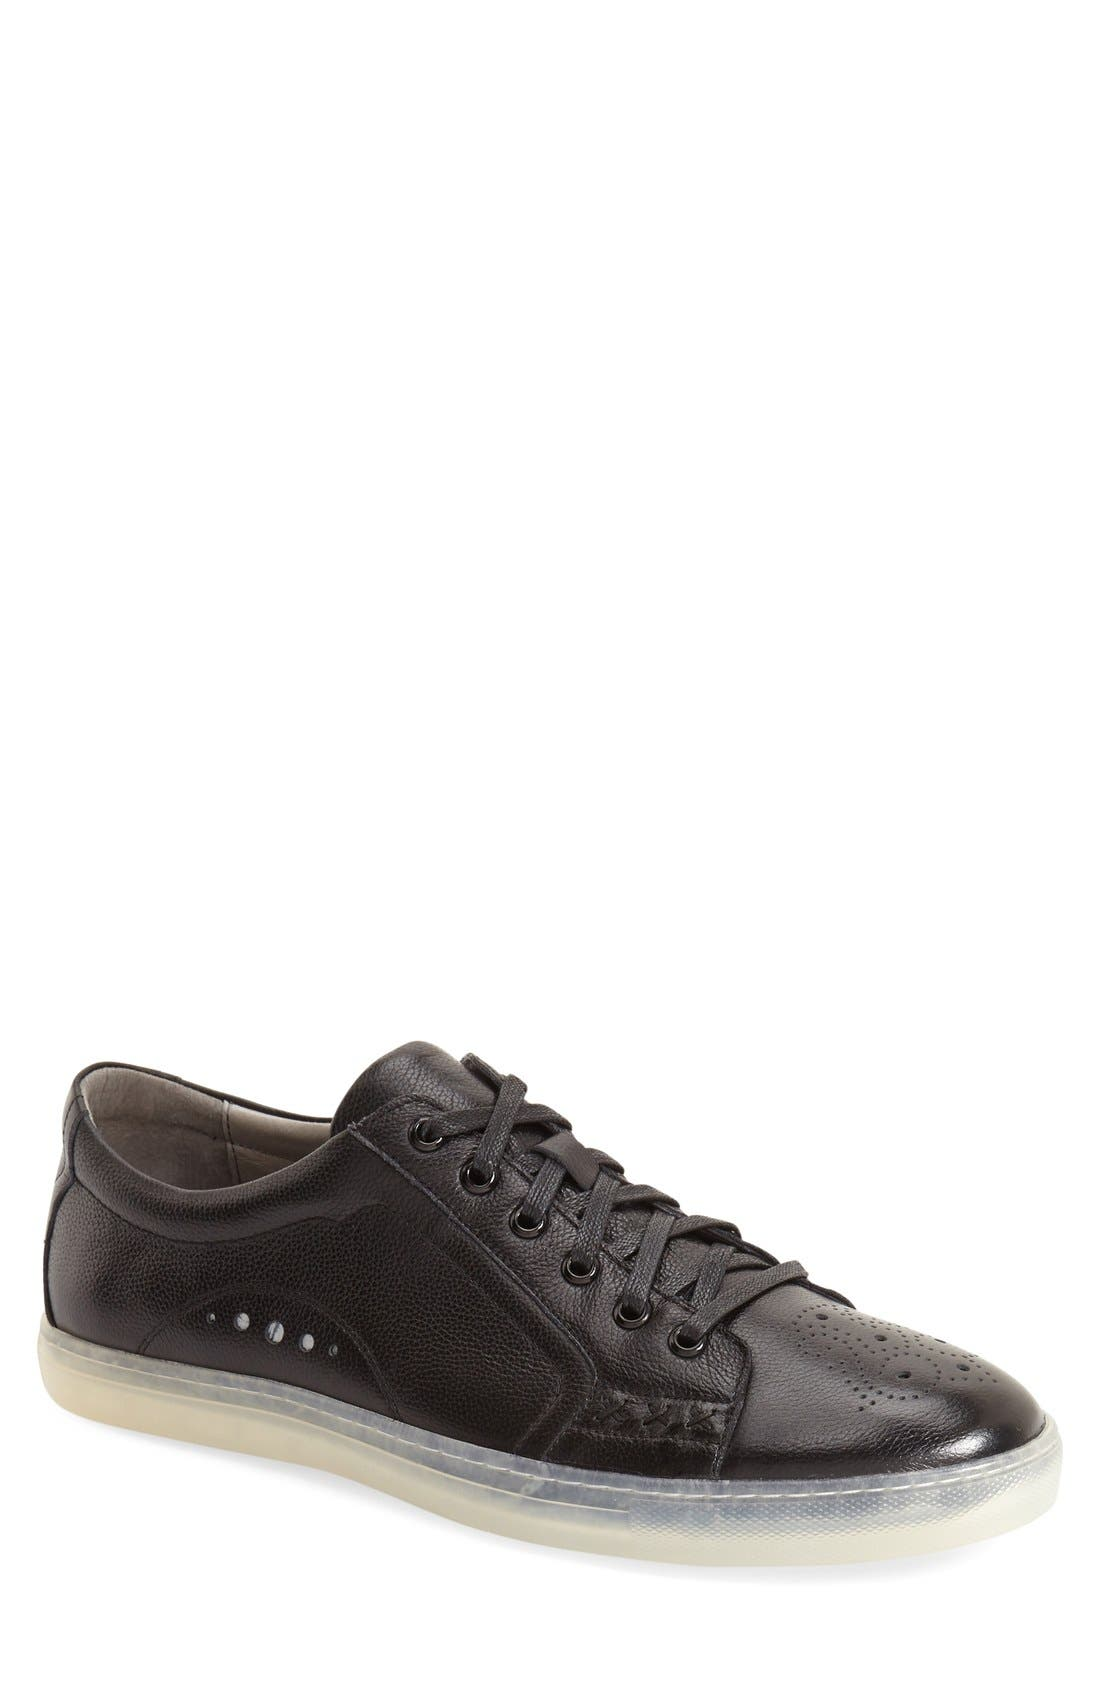 'Drum' Lace-Up Sneaker,                             Main thumbnail 2, color,